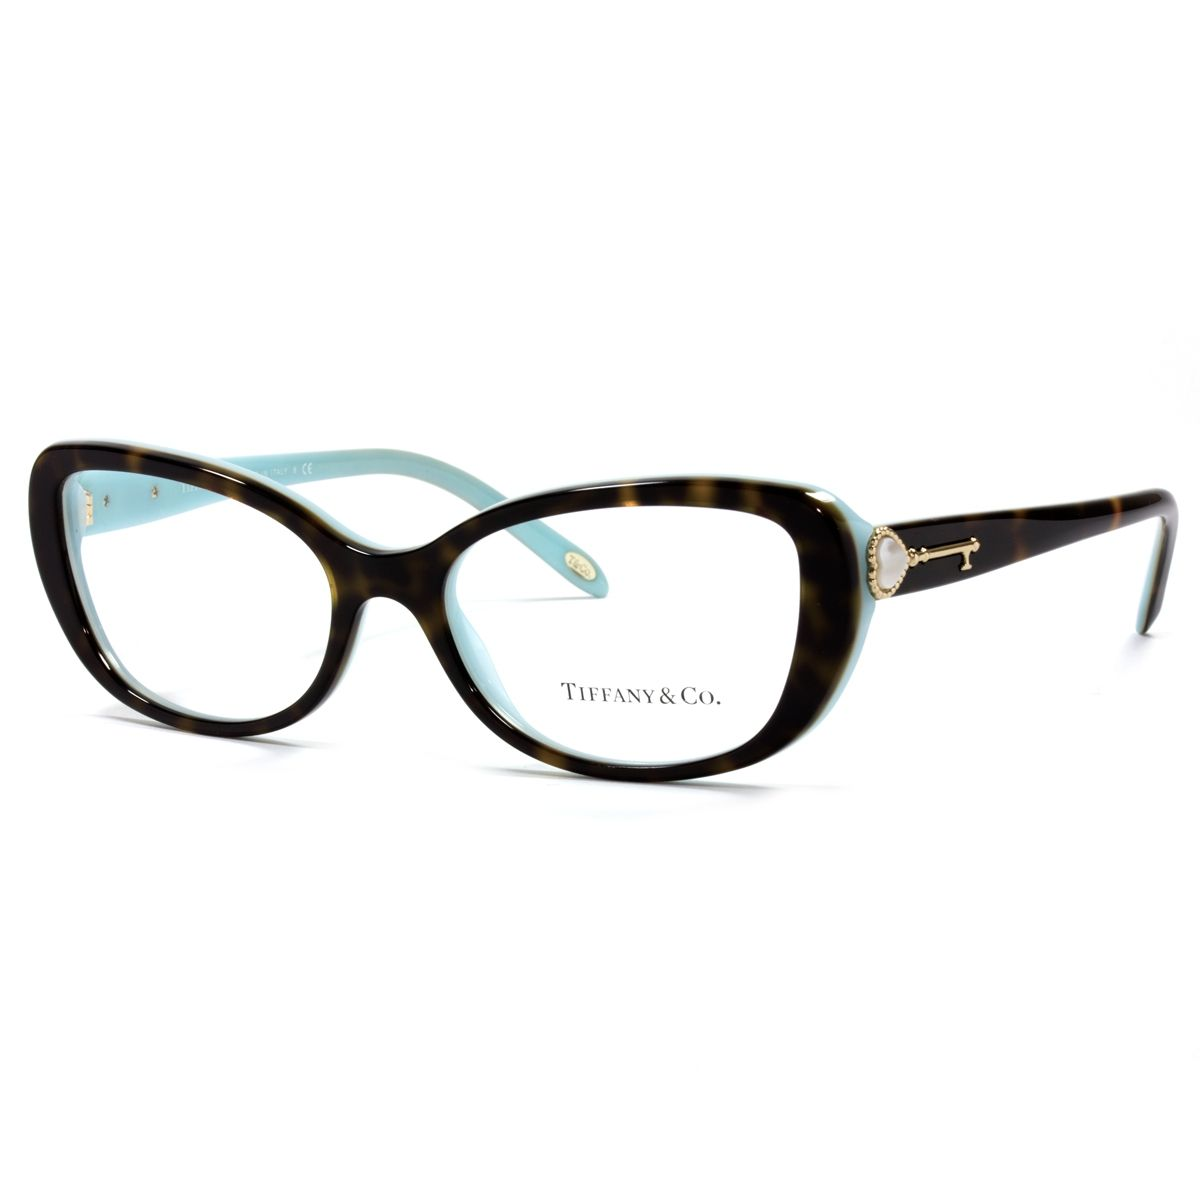 Óculos de Grau Tiffany   Co 2105-H 8134 54 na Visostore   I Want ... f5b38c7313